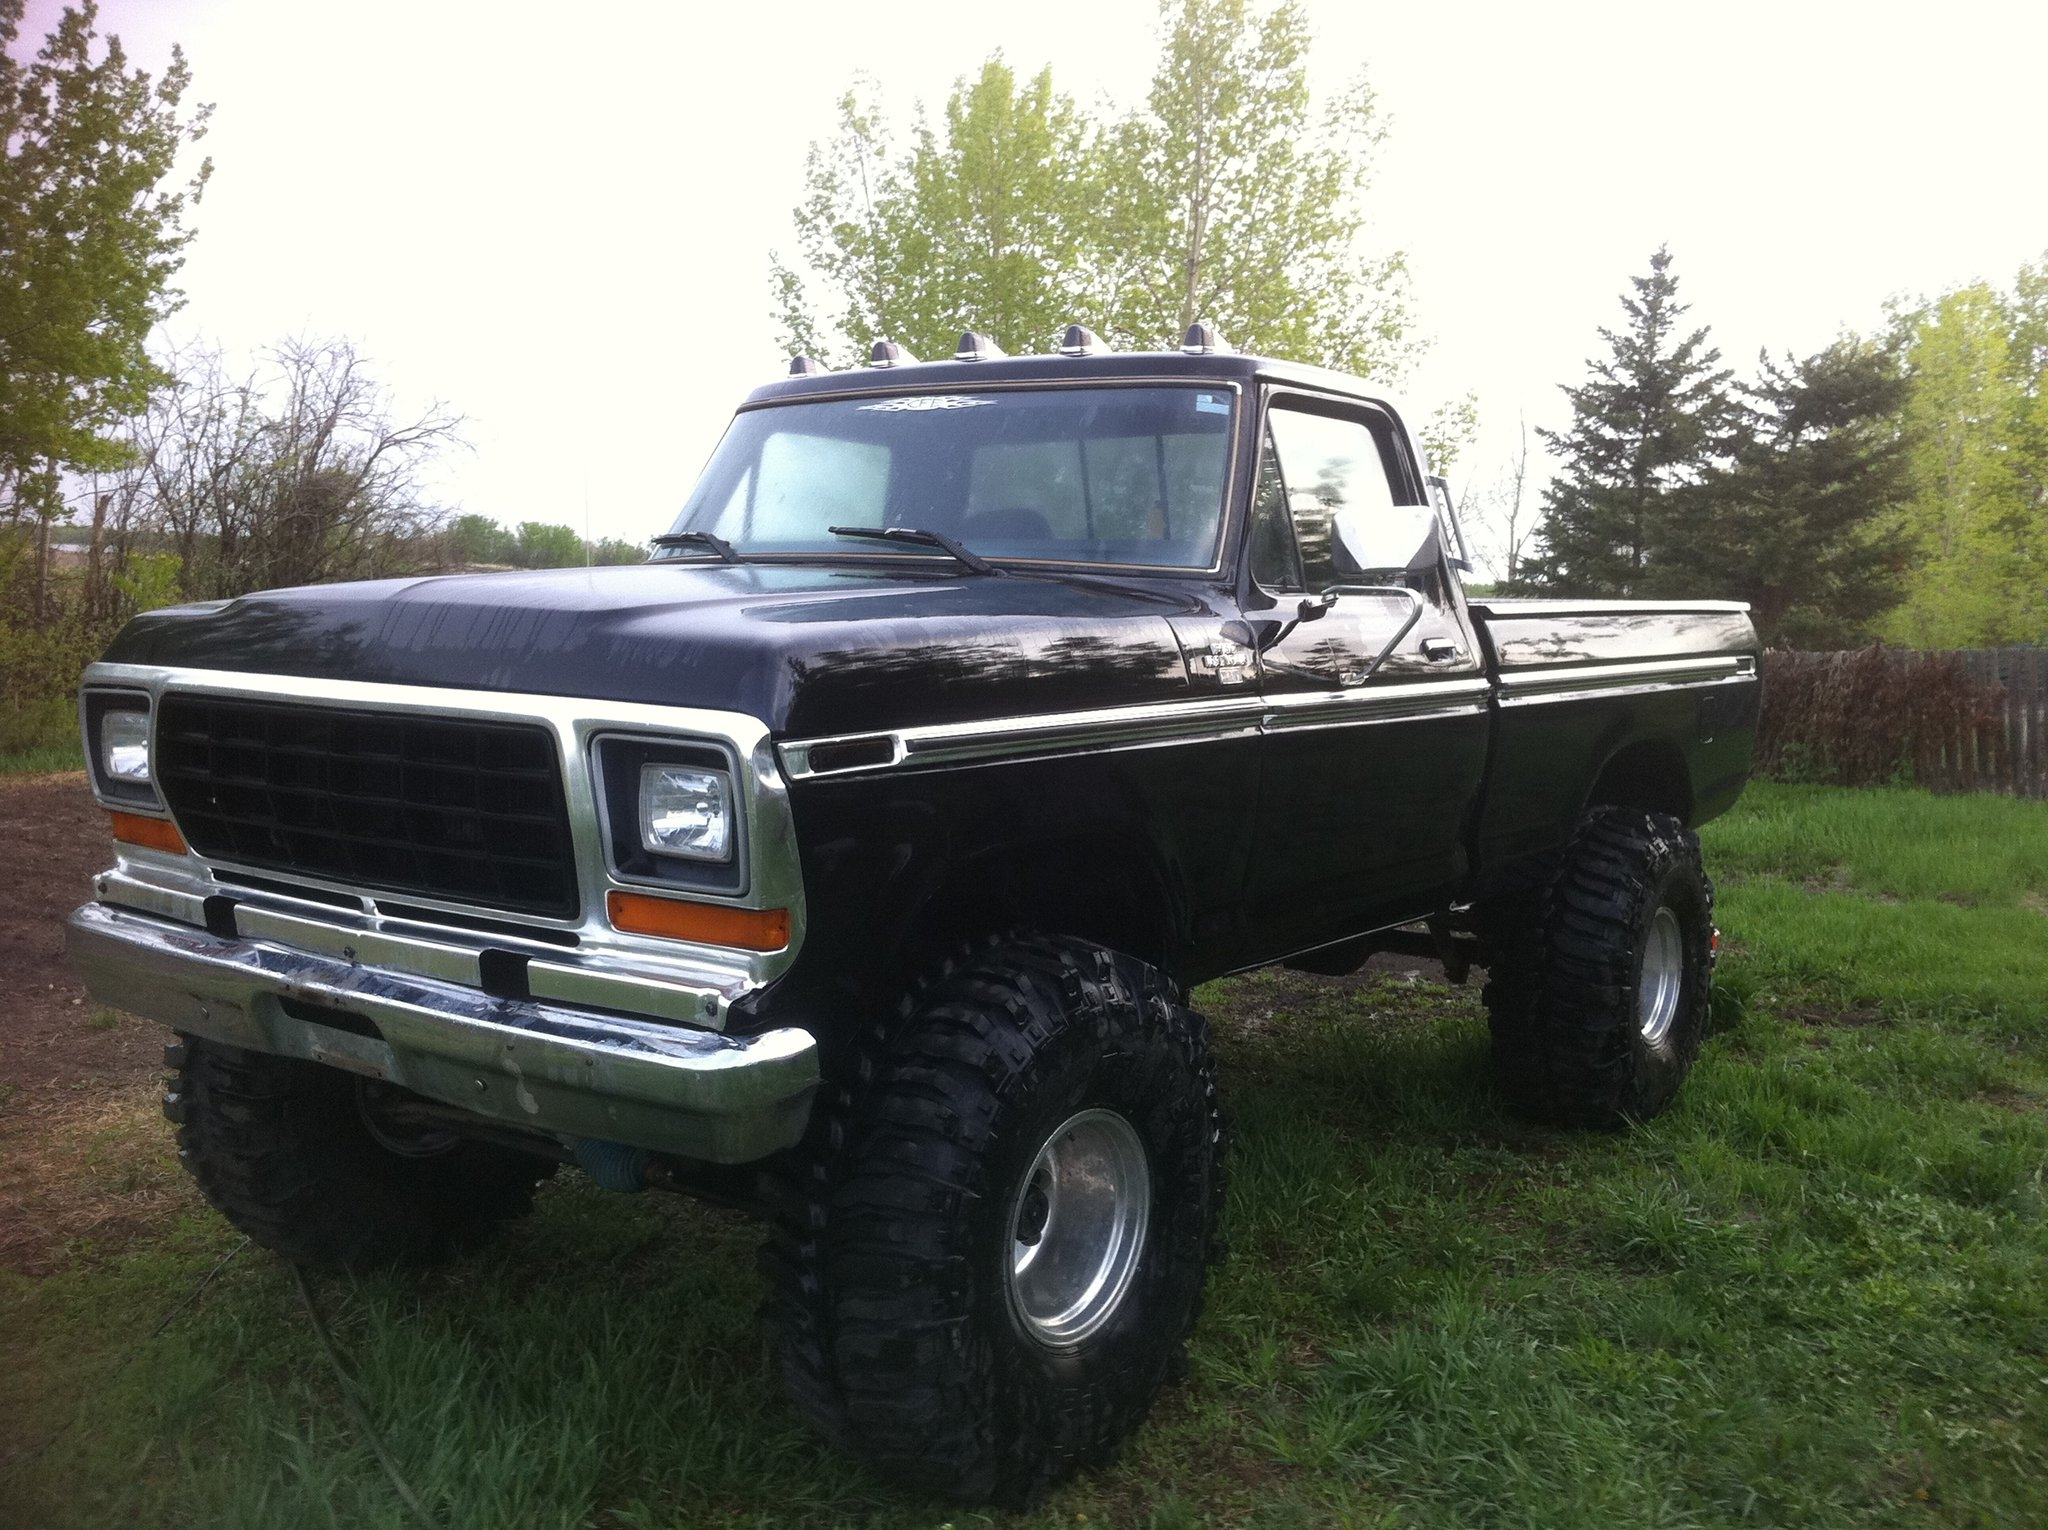 sledneck860 1979 Ford F150 Regular Cab